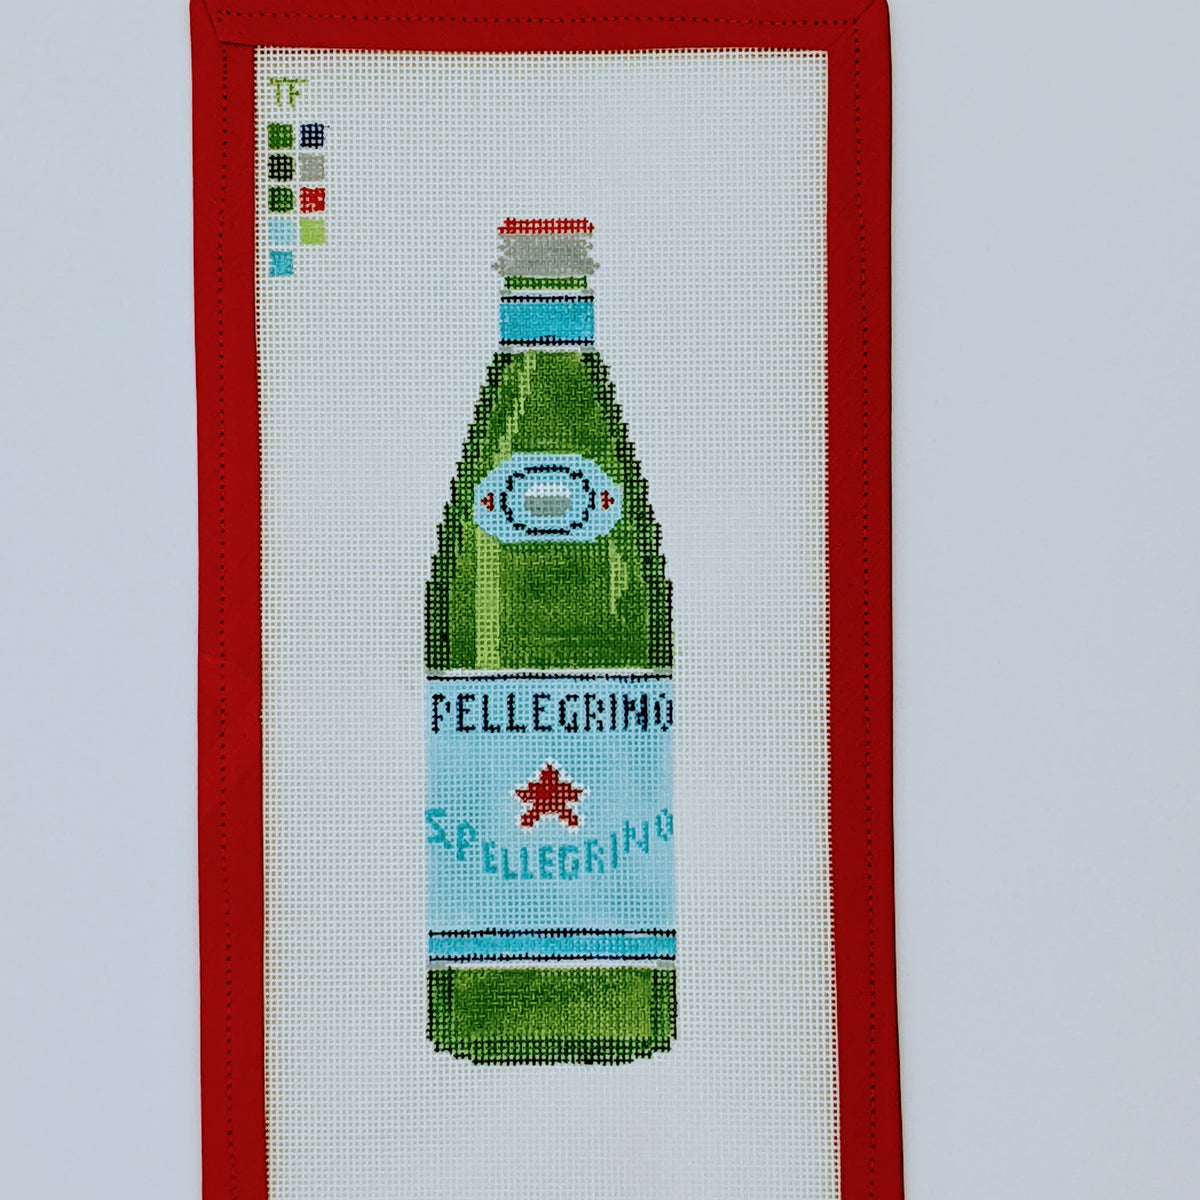 San Pellegrino Sparkling Water Bottle